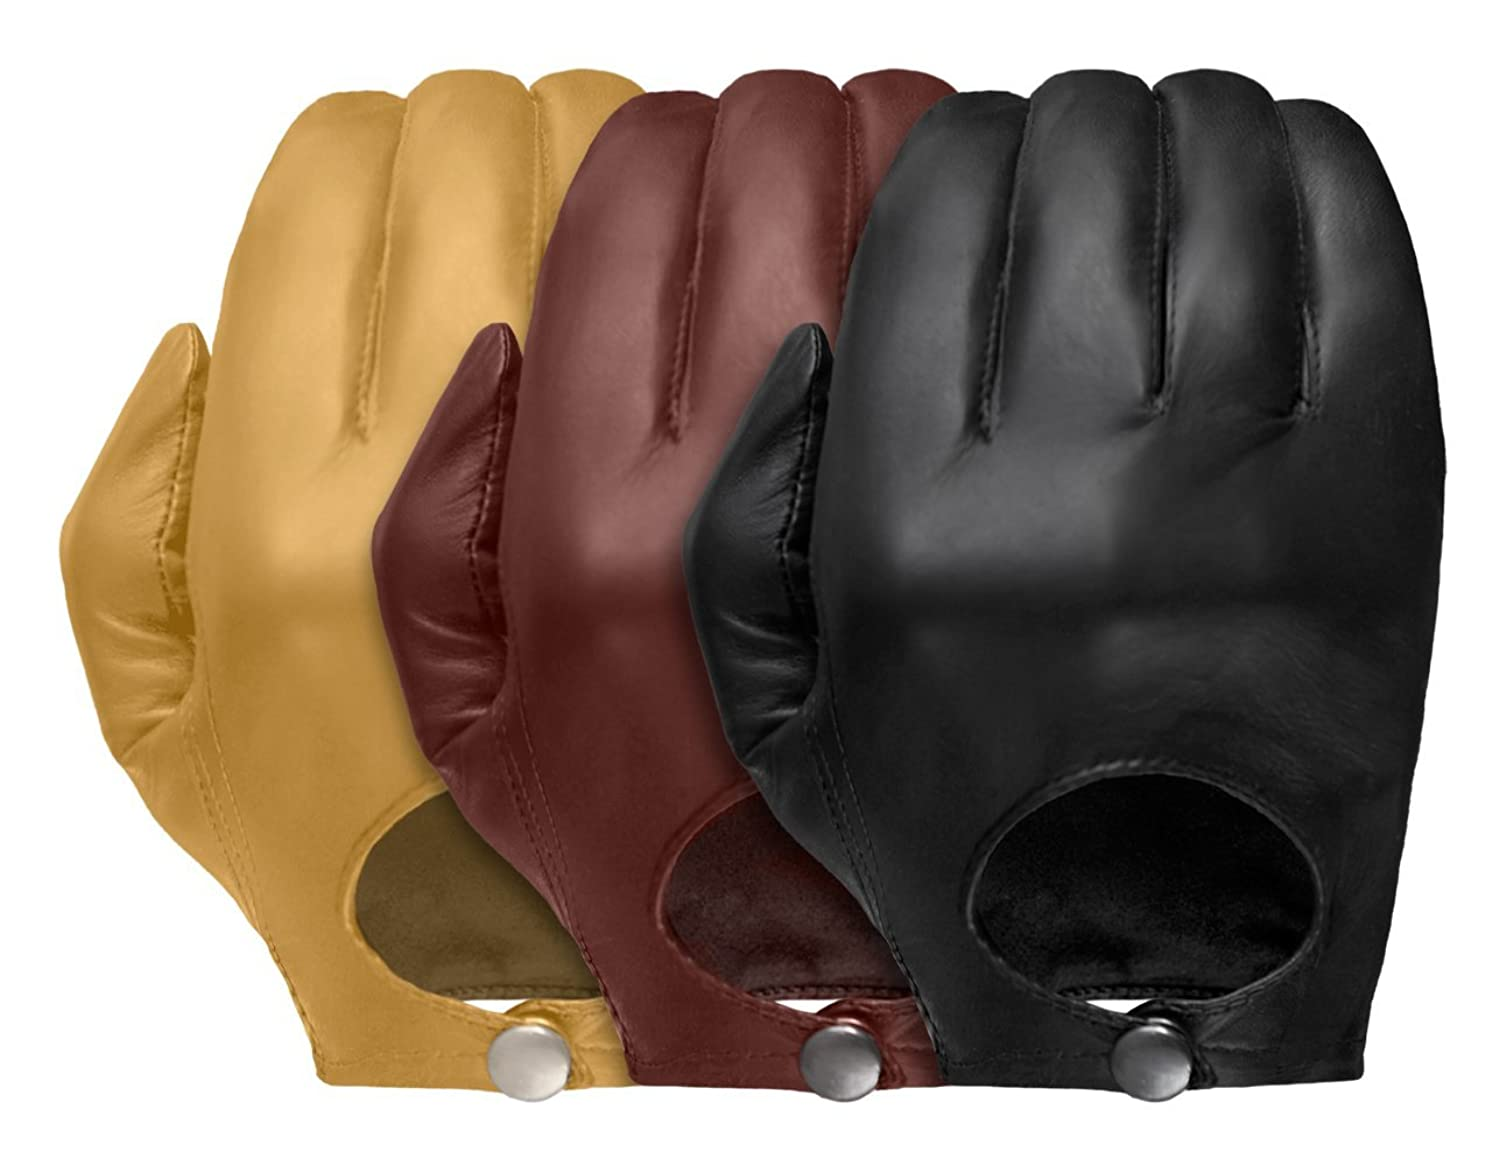 Wheelskins leather driving gloves - Tough Gloves Men S Ultra Thin Stealth Leather Gloves Size 6 Color Black At Amazon Men S Clothing Store Cold Weather Gloves